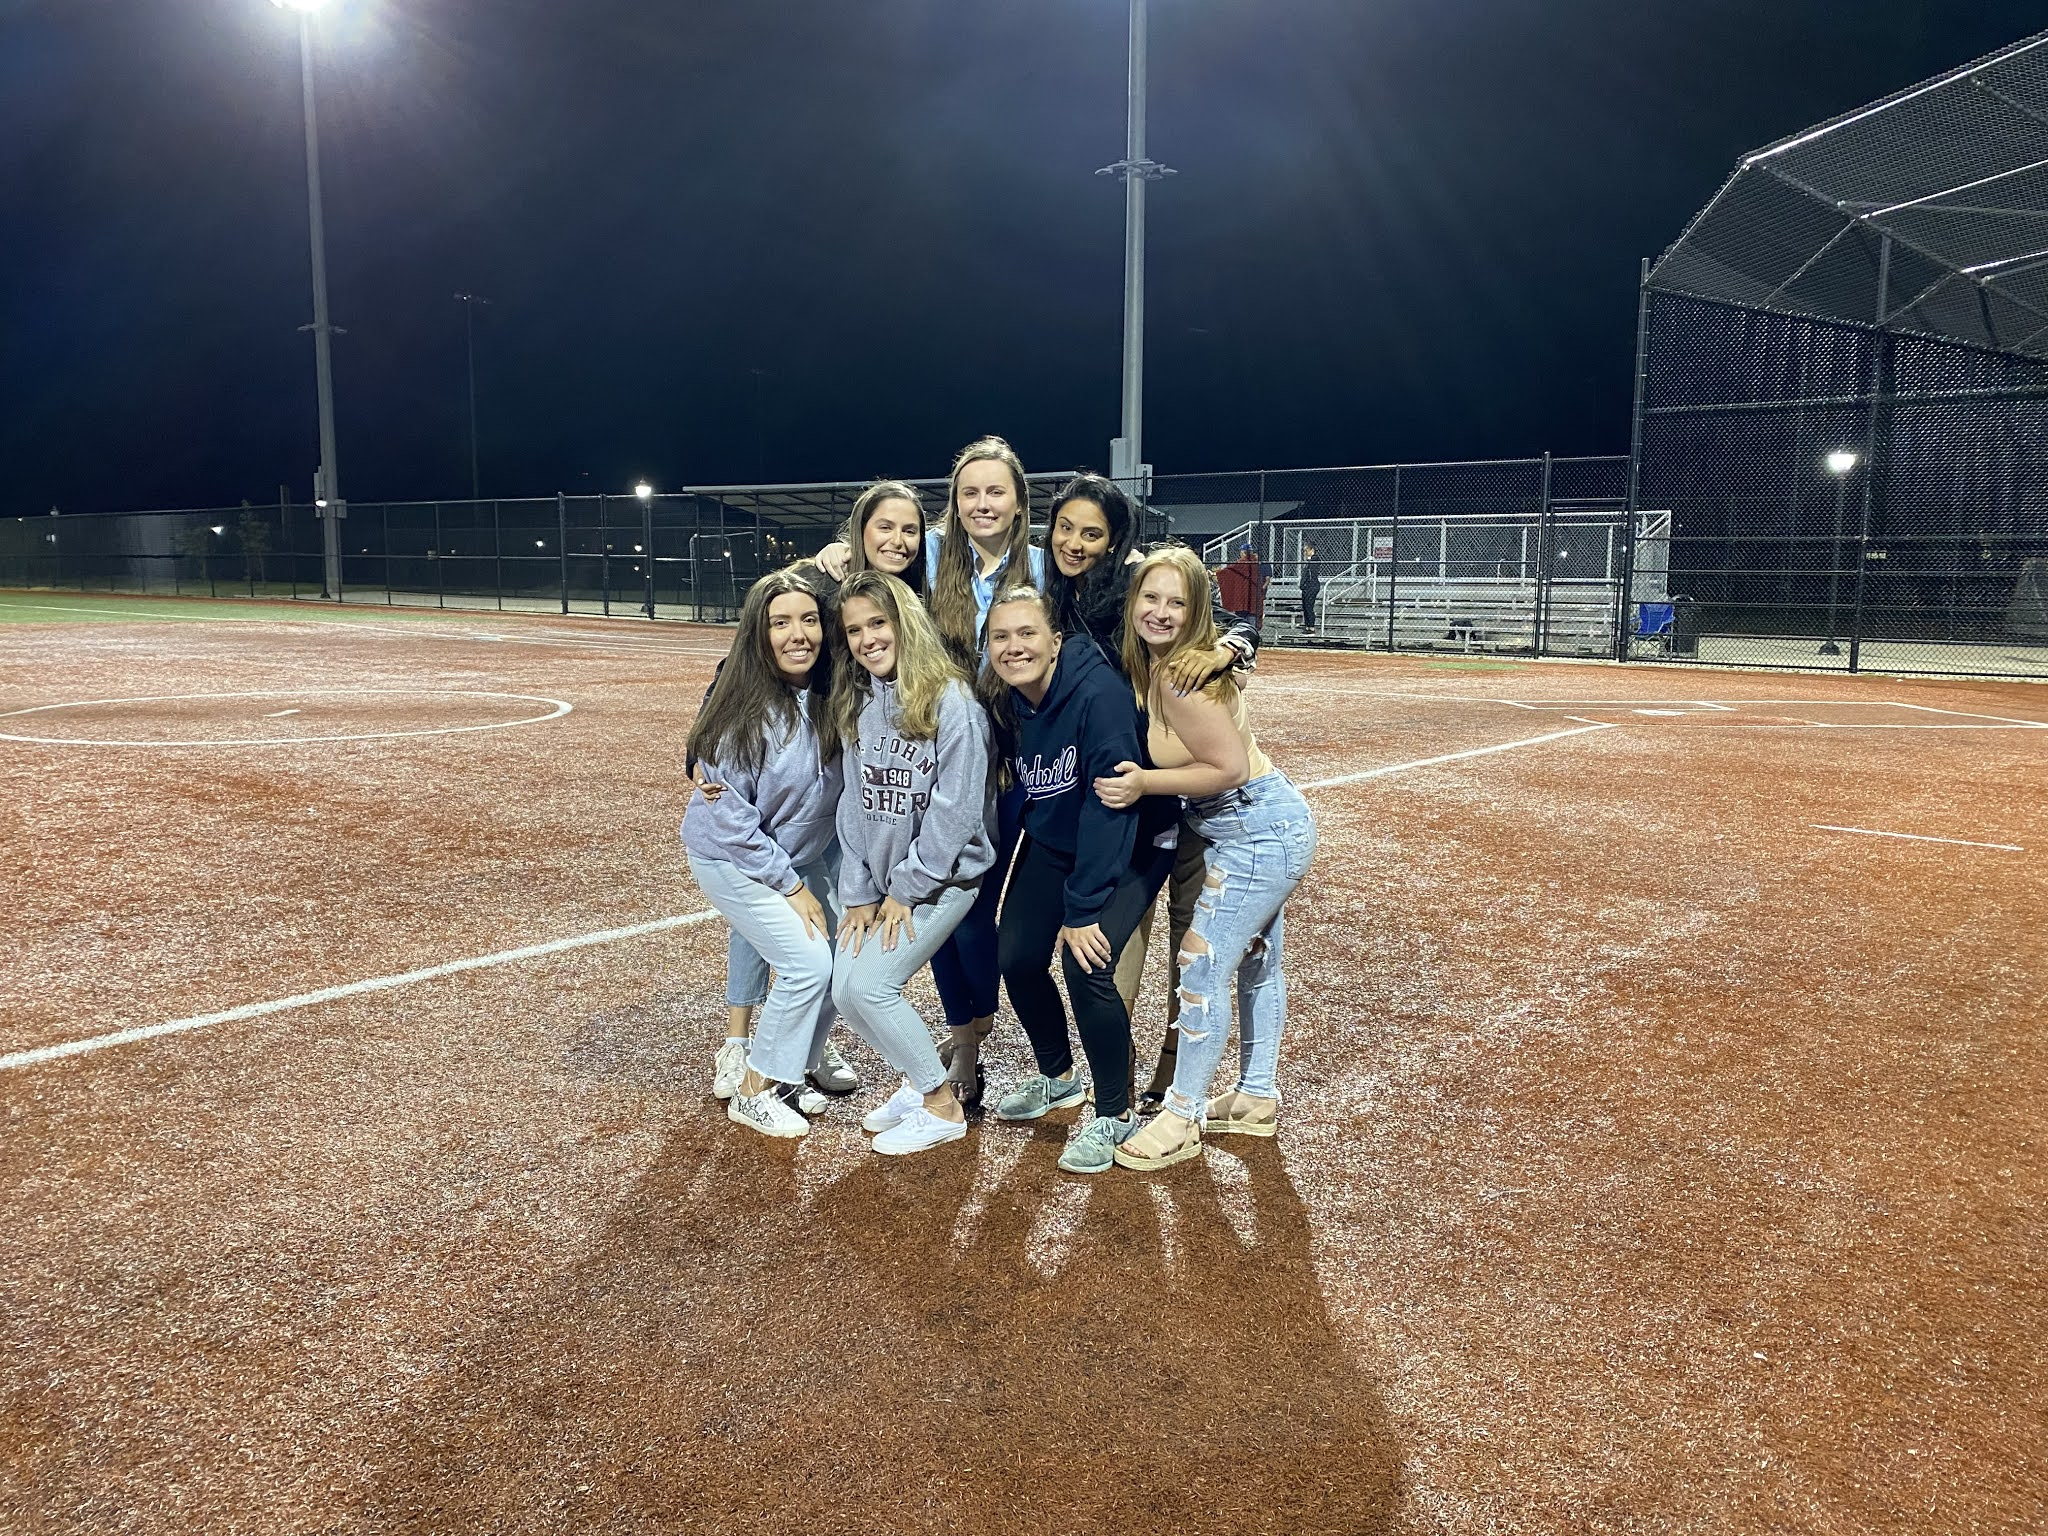 friends, law school, cute outfits, summer outfit, baseball game outfit, softball game